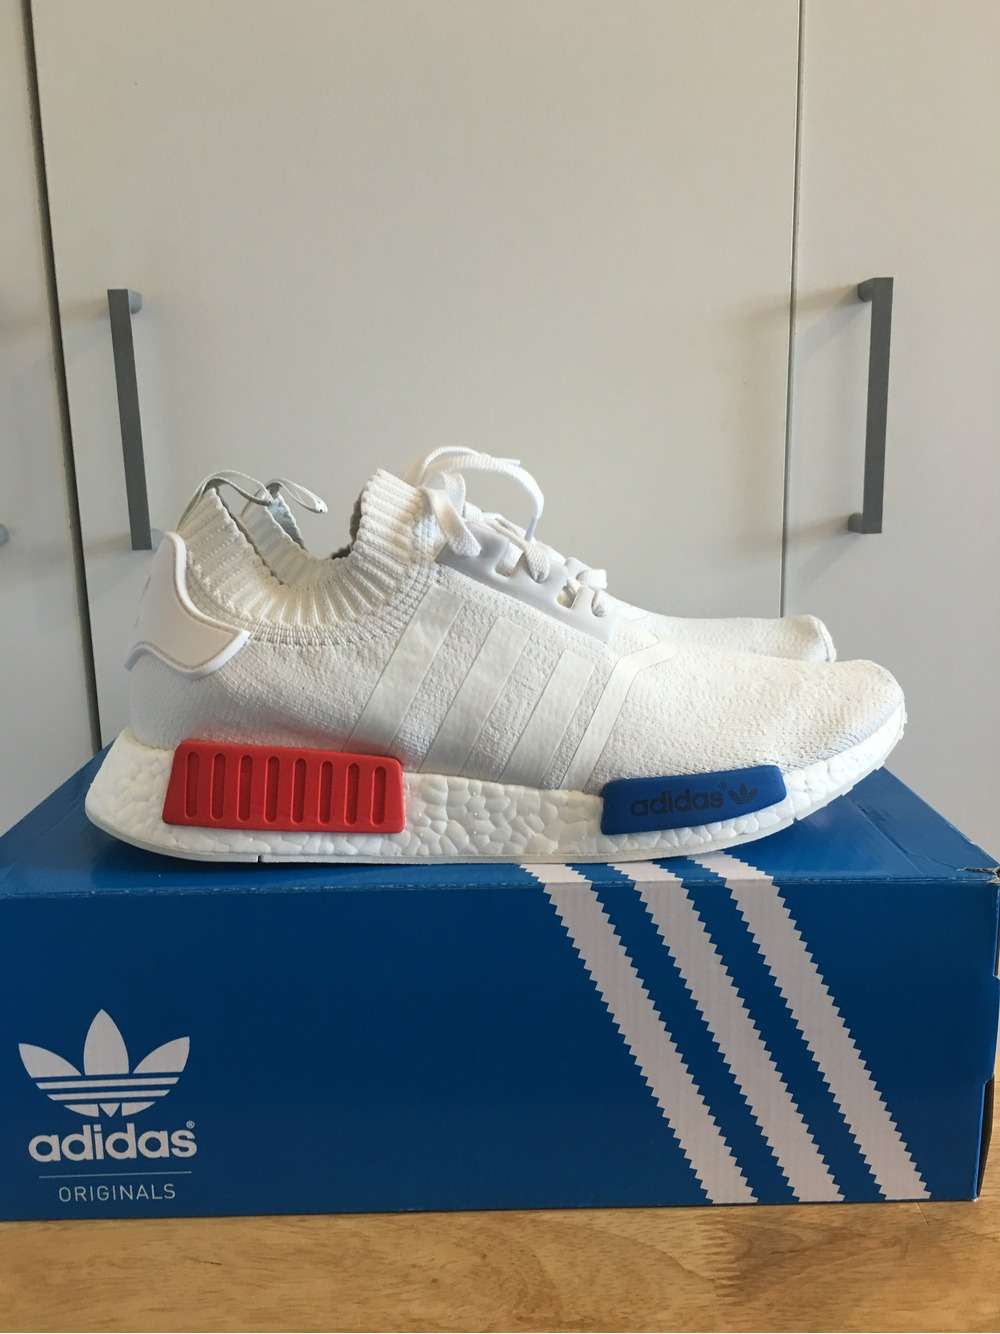 Adidas Nmd R1 Prime Knit Ice Blue White Hers trainers Office